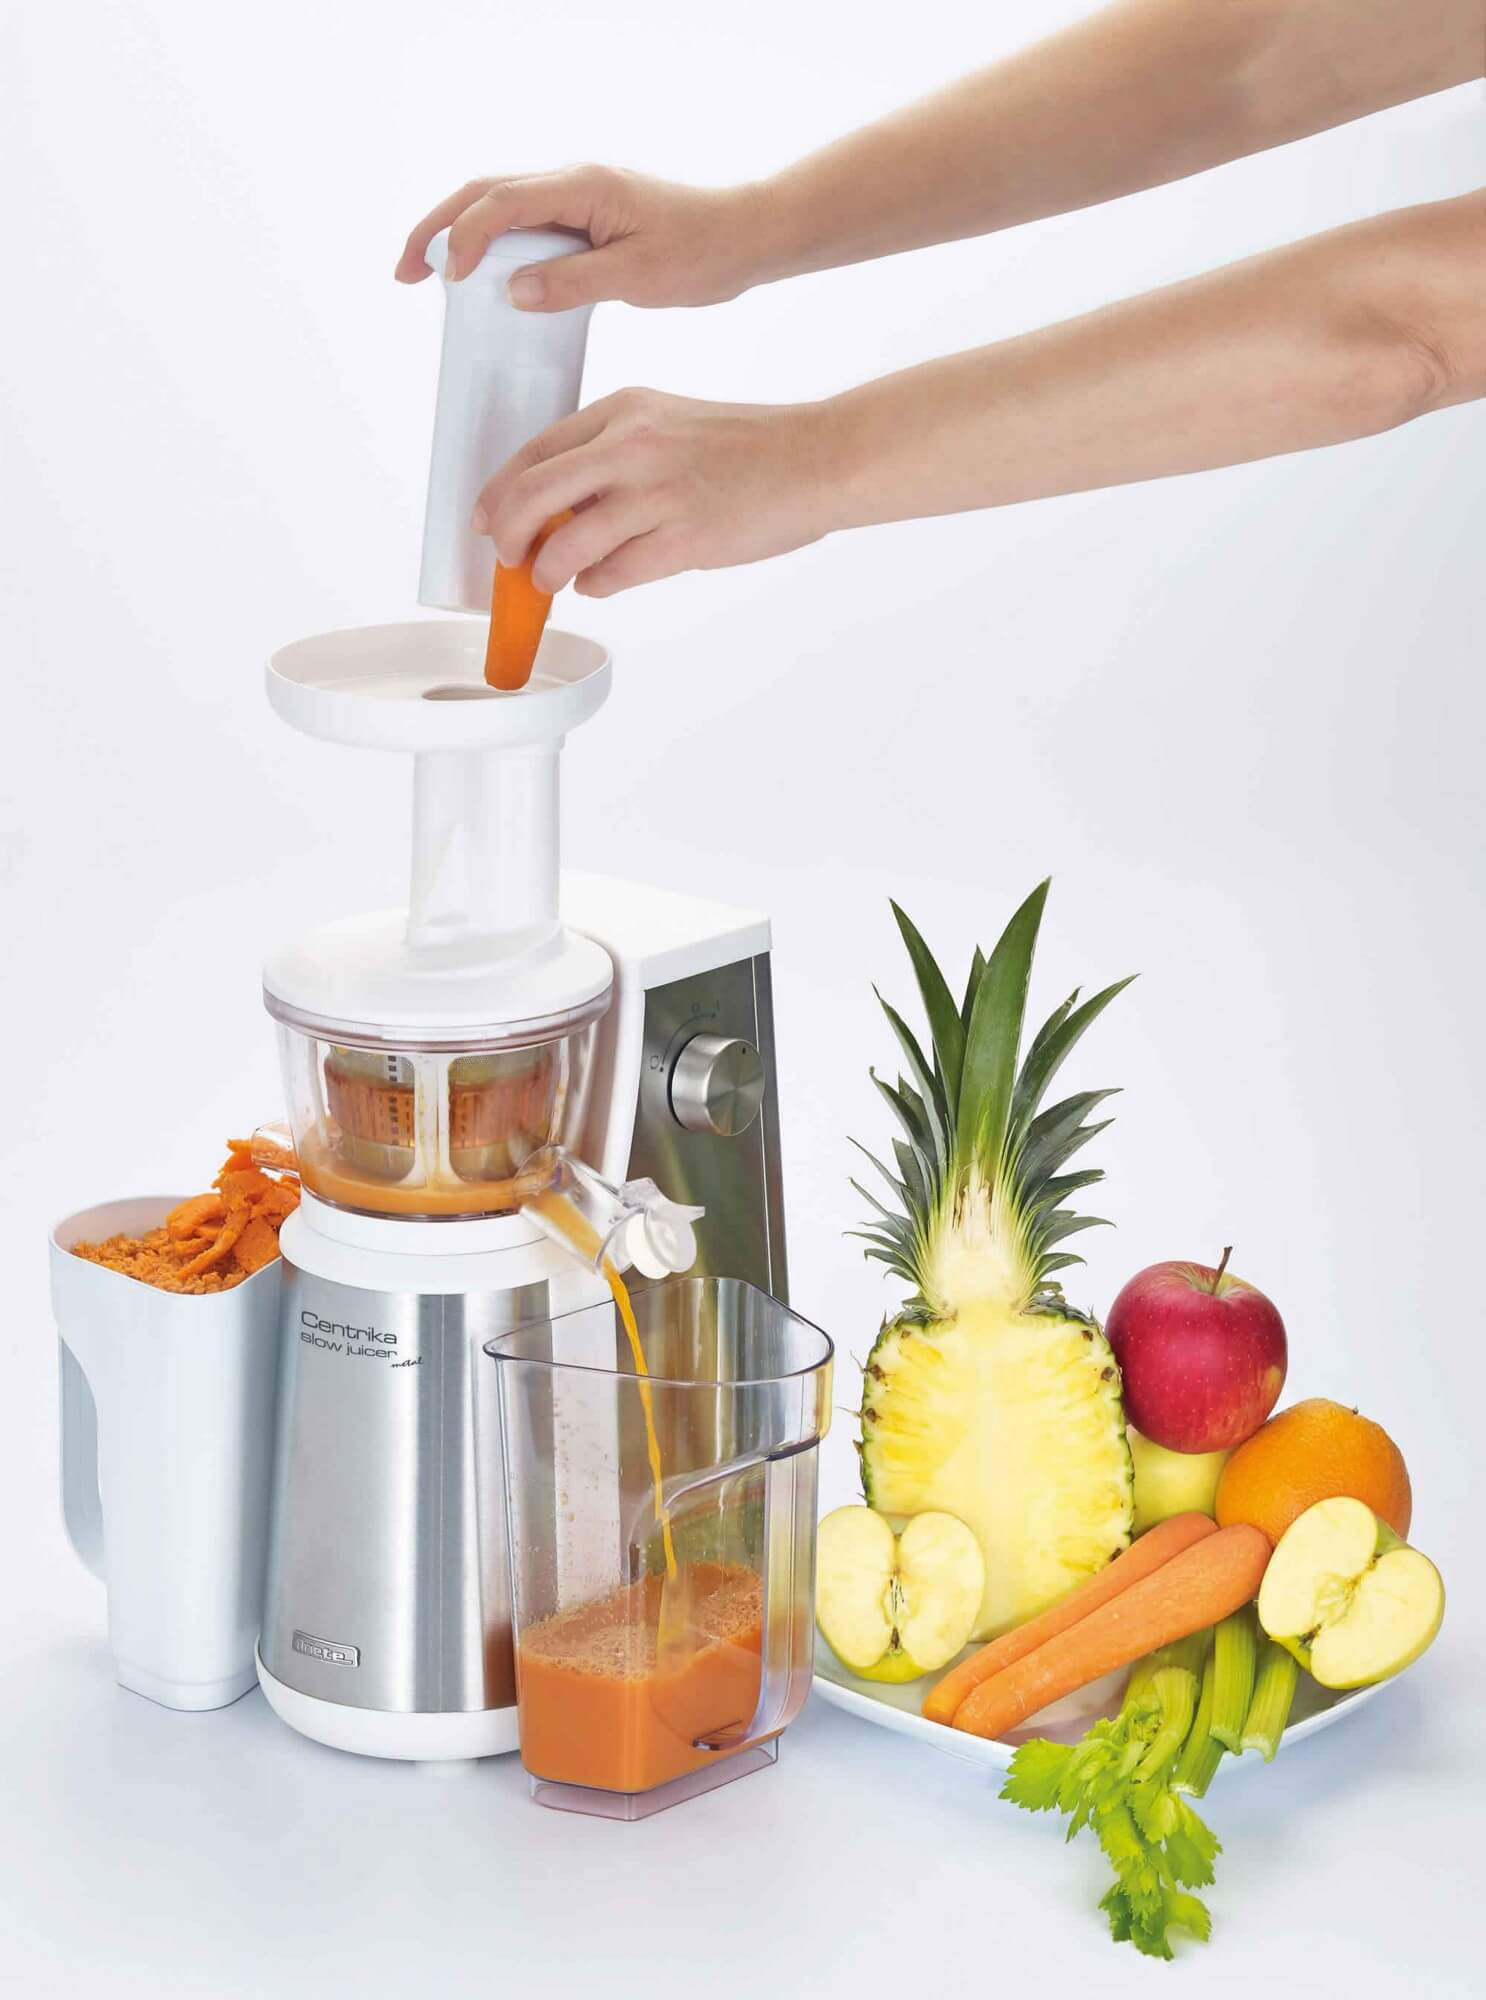 Cucina Red Slow Juicer Reviews : Centrika Slow Juicer Metal - Ariete